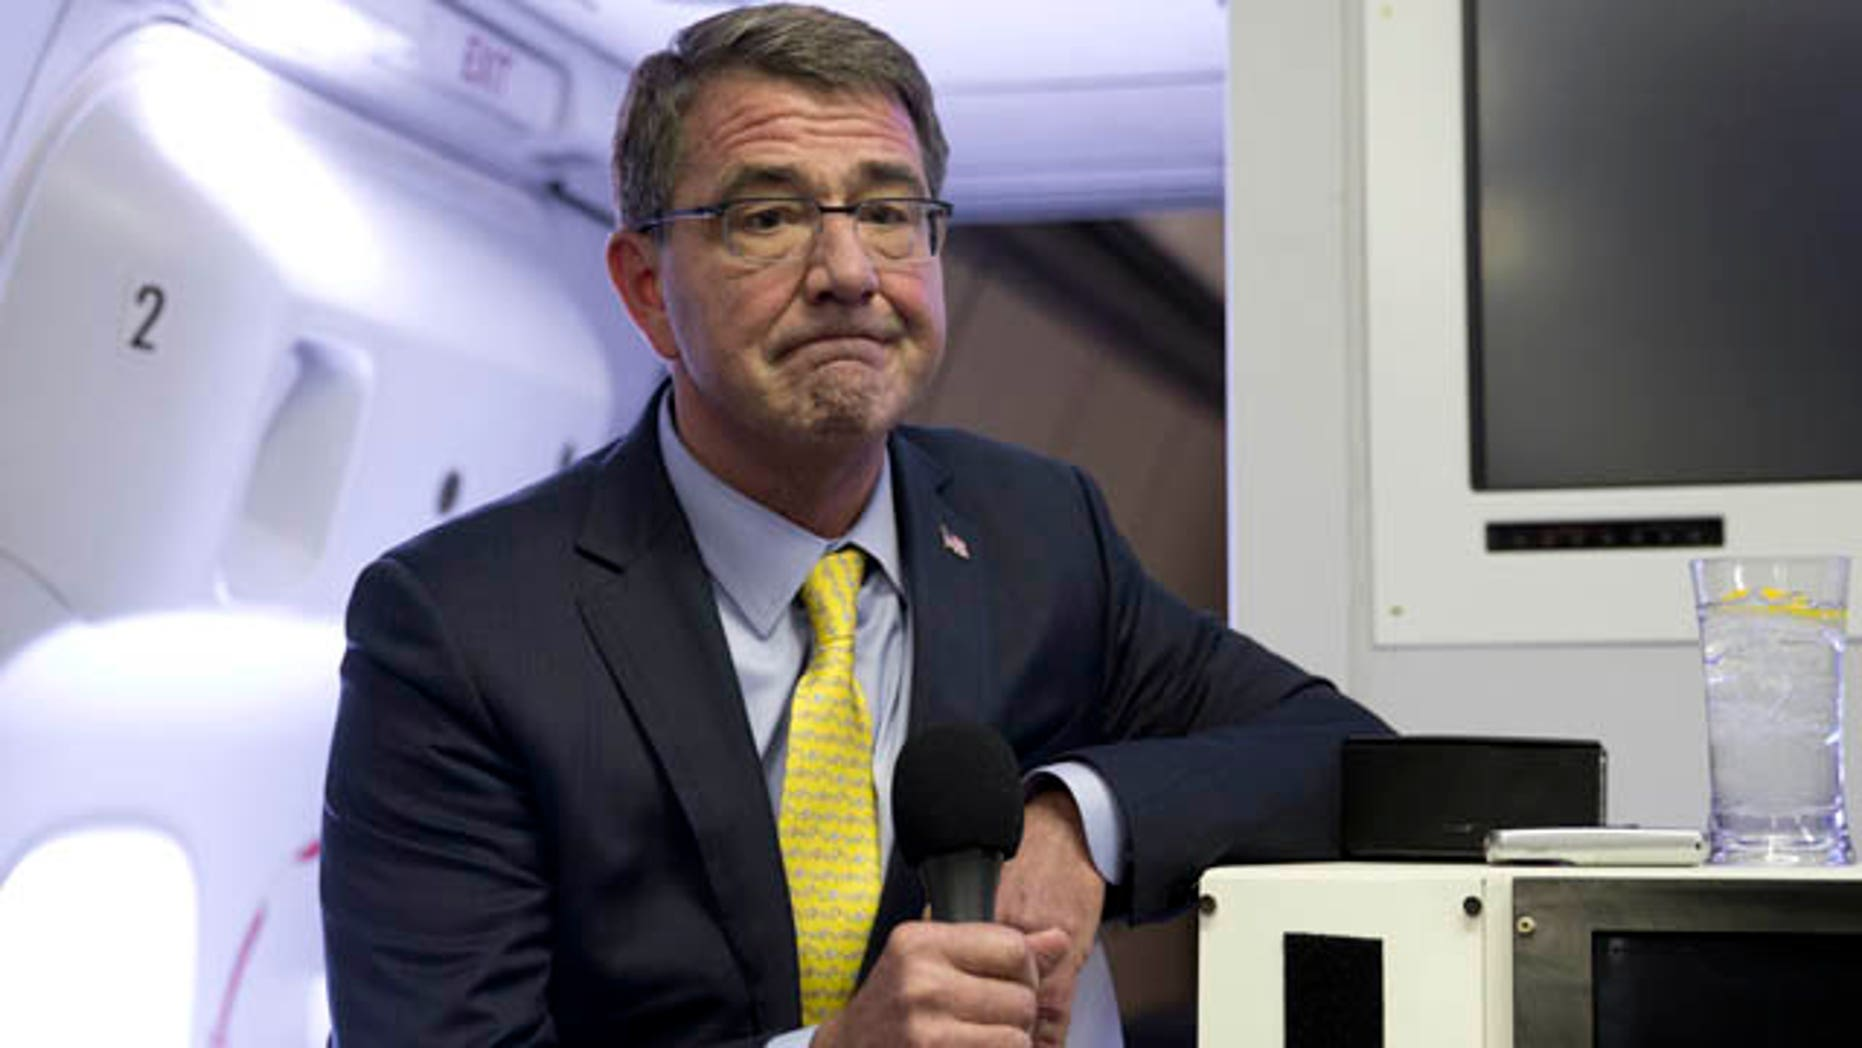 FILE - In this Wednesday, July 22, 2015, file photo, U.S. Defense Secretary Ash Carter pauses as he speaks with media on a military aircraft after departing Jiddah, Saudi Arabia, en route to Amman, Jordan. (AP Photo/Carolyn Kaster, Pool, File)